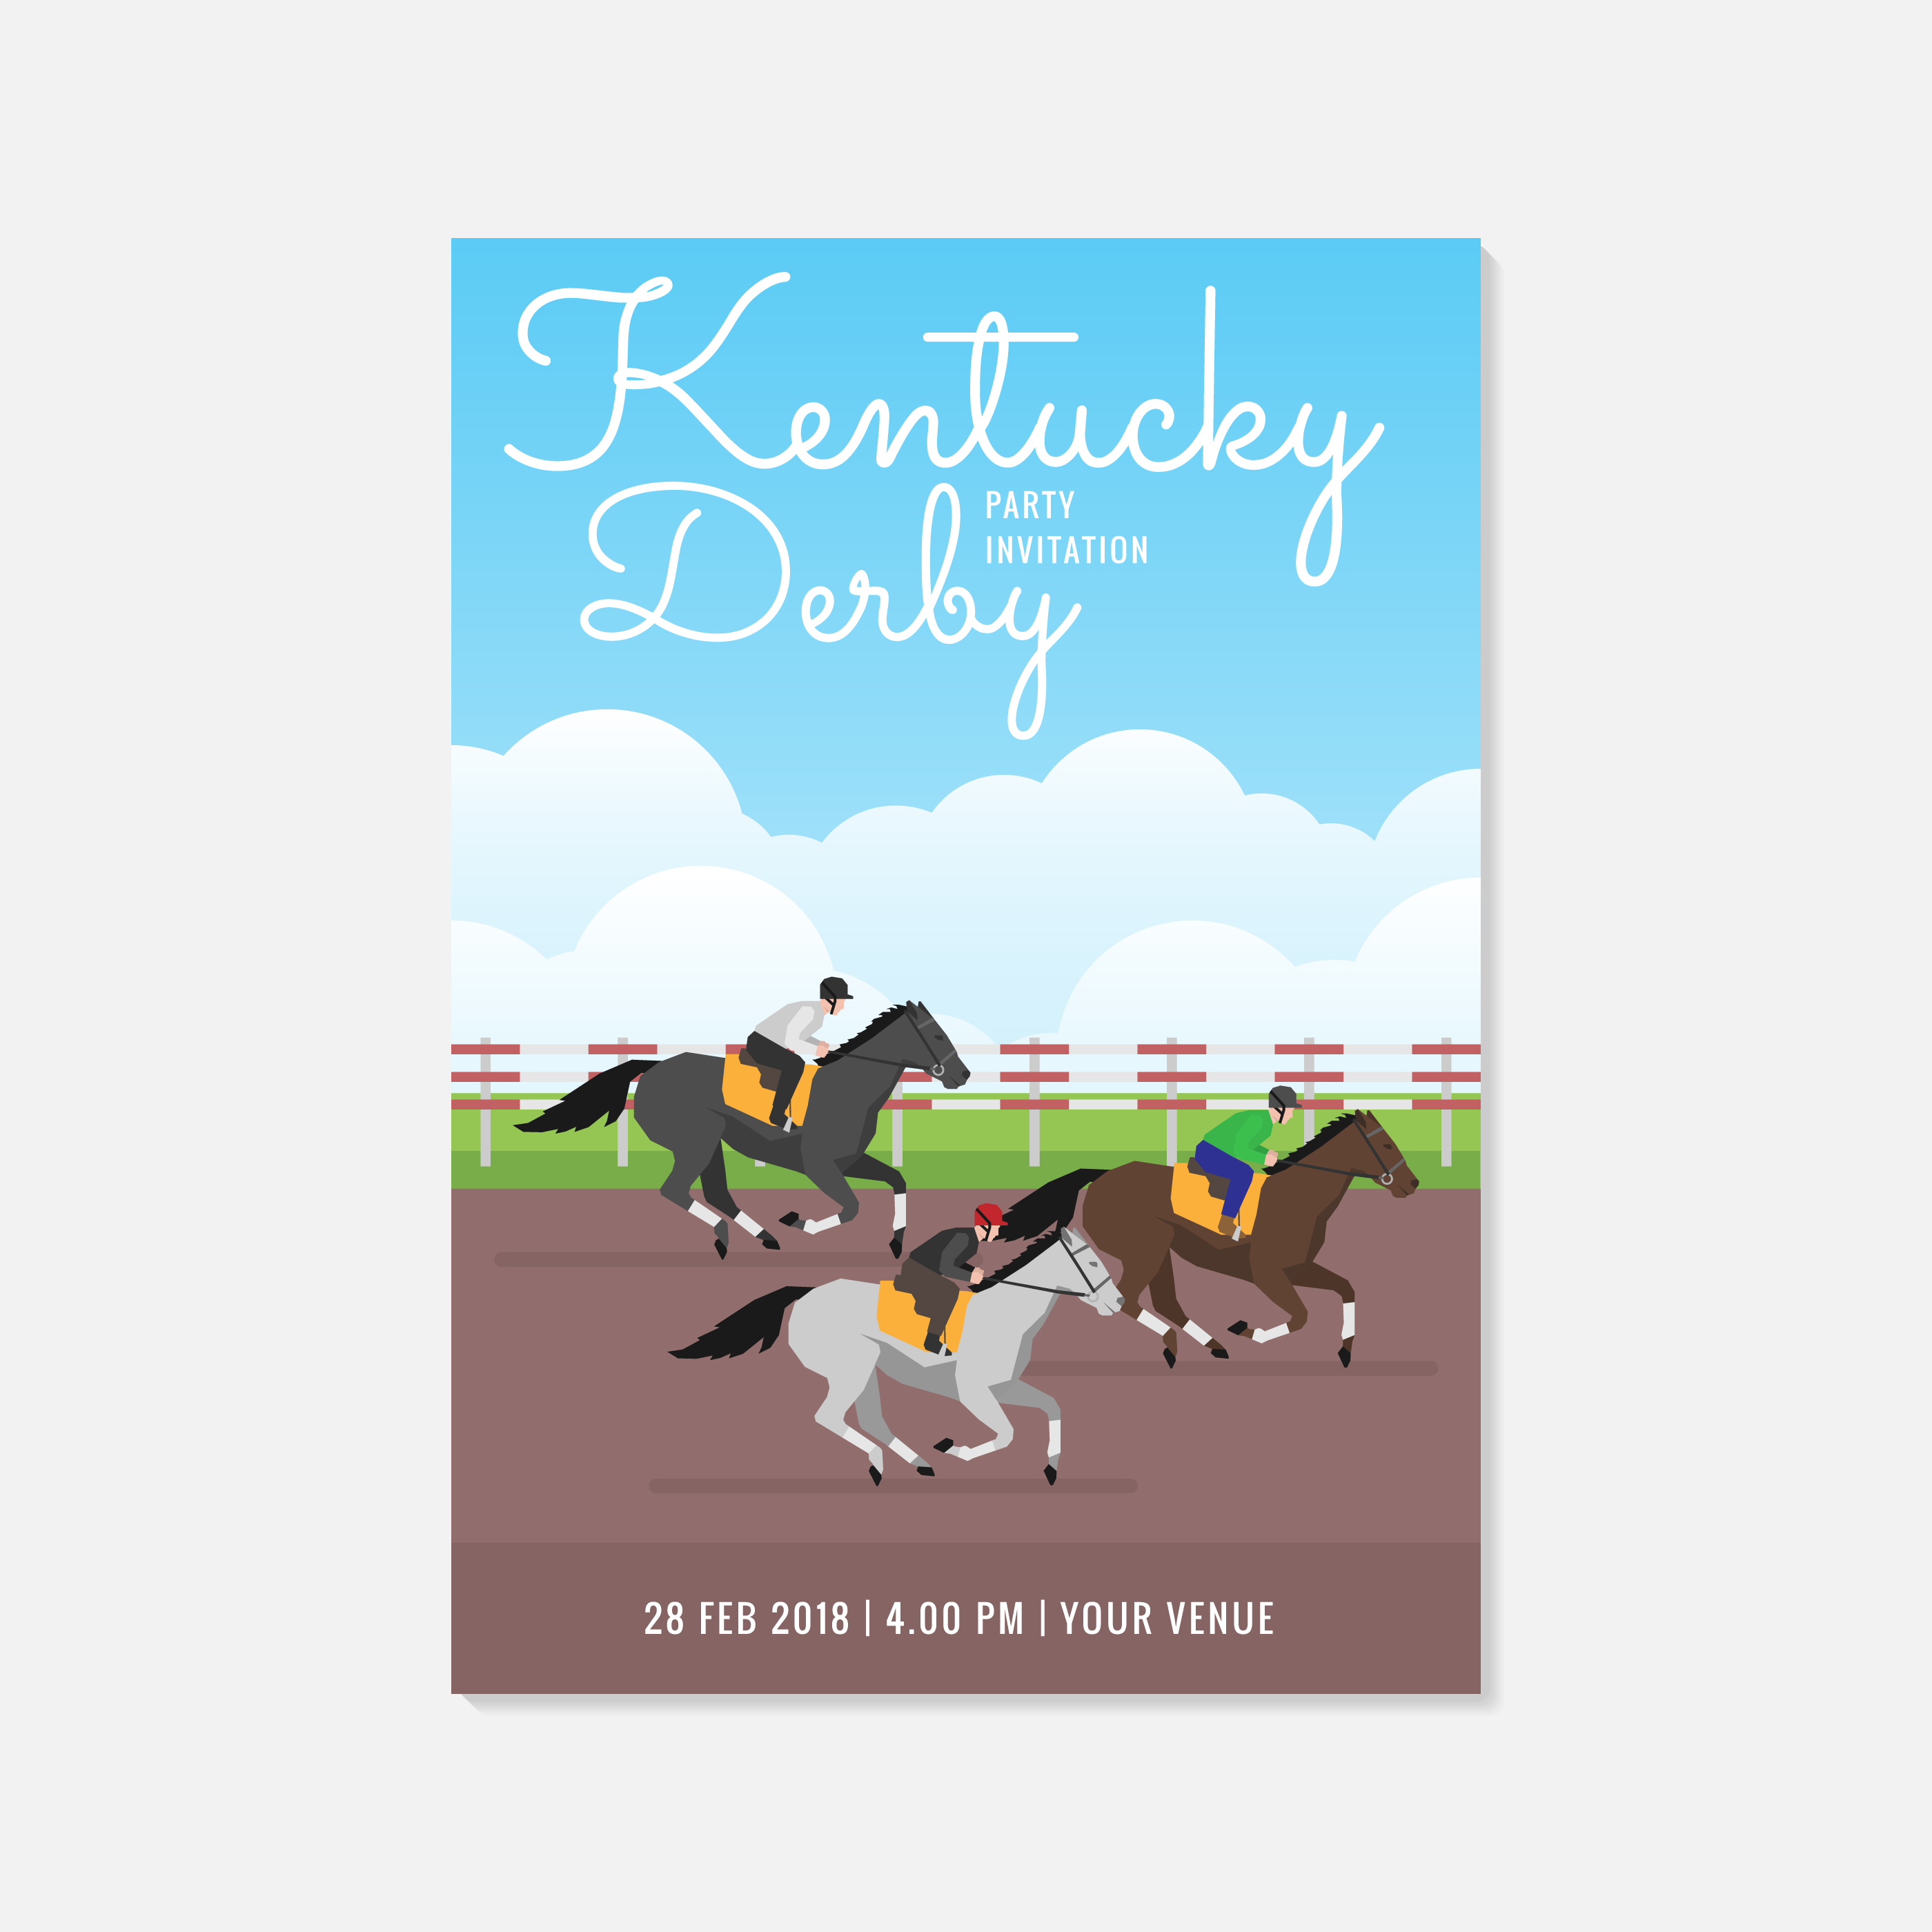 Kentucky Derby Party Invitation Template - Download Free Vectors